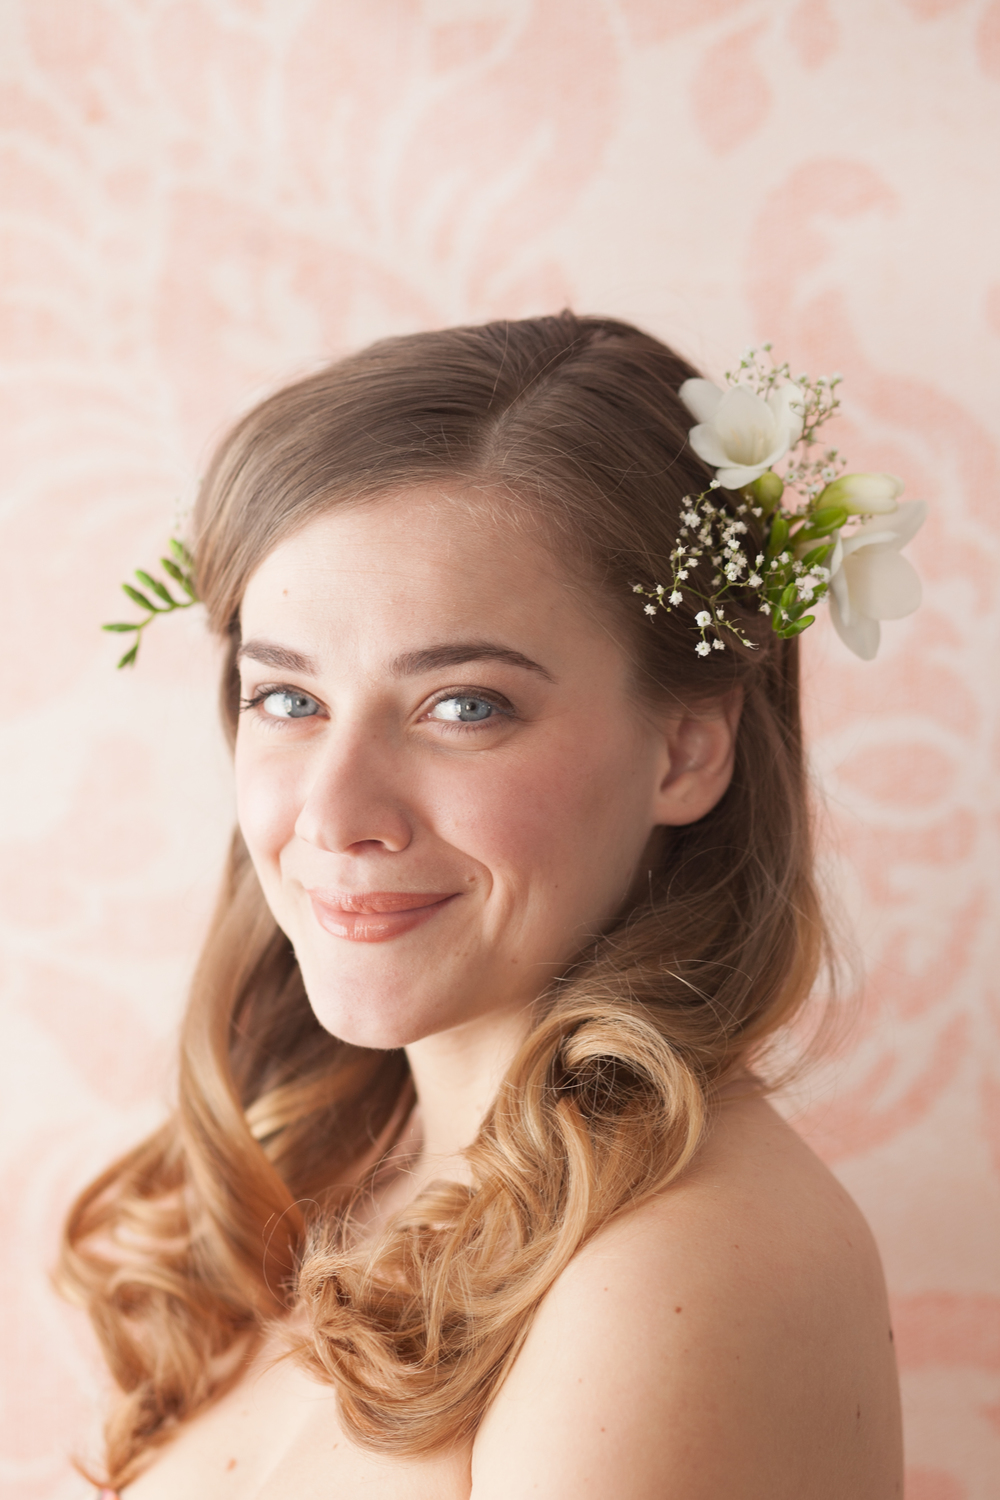 Freesia and gypsophila hair flowers